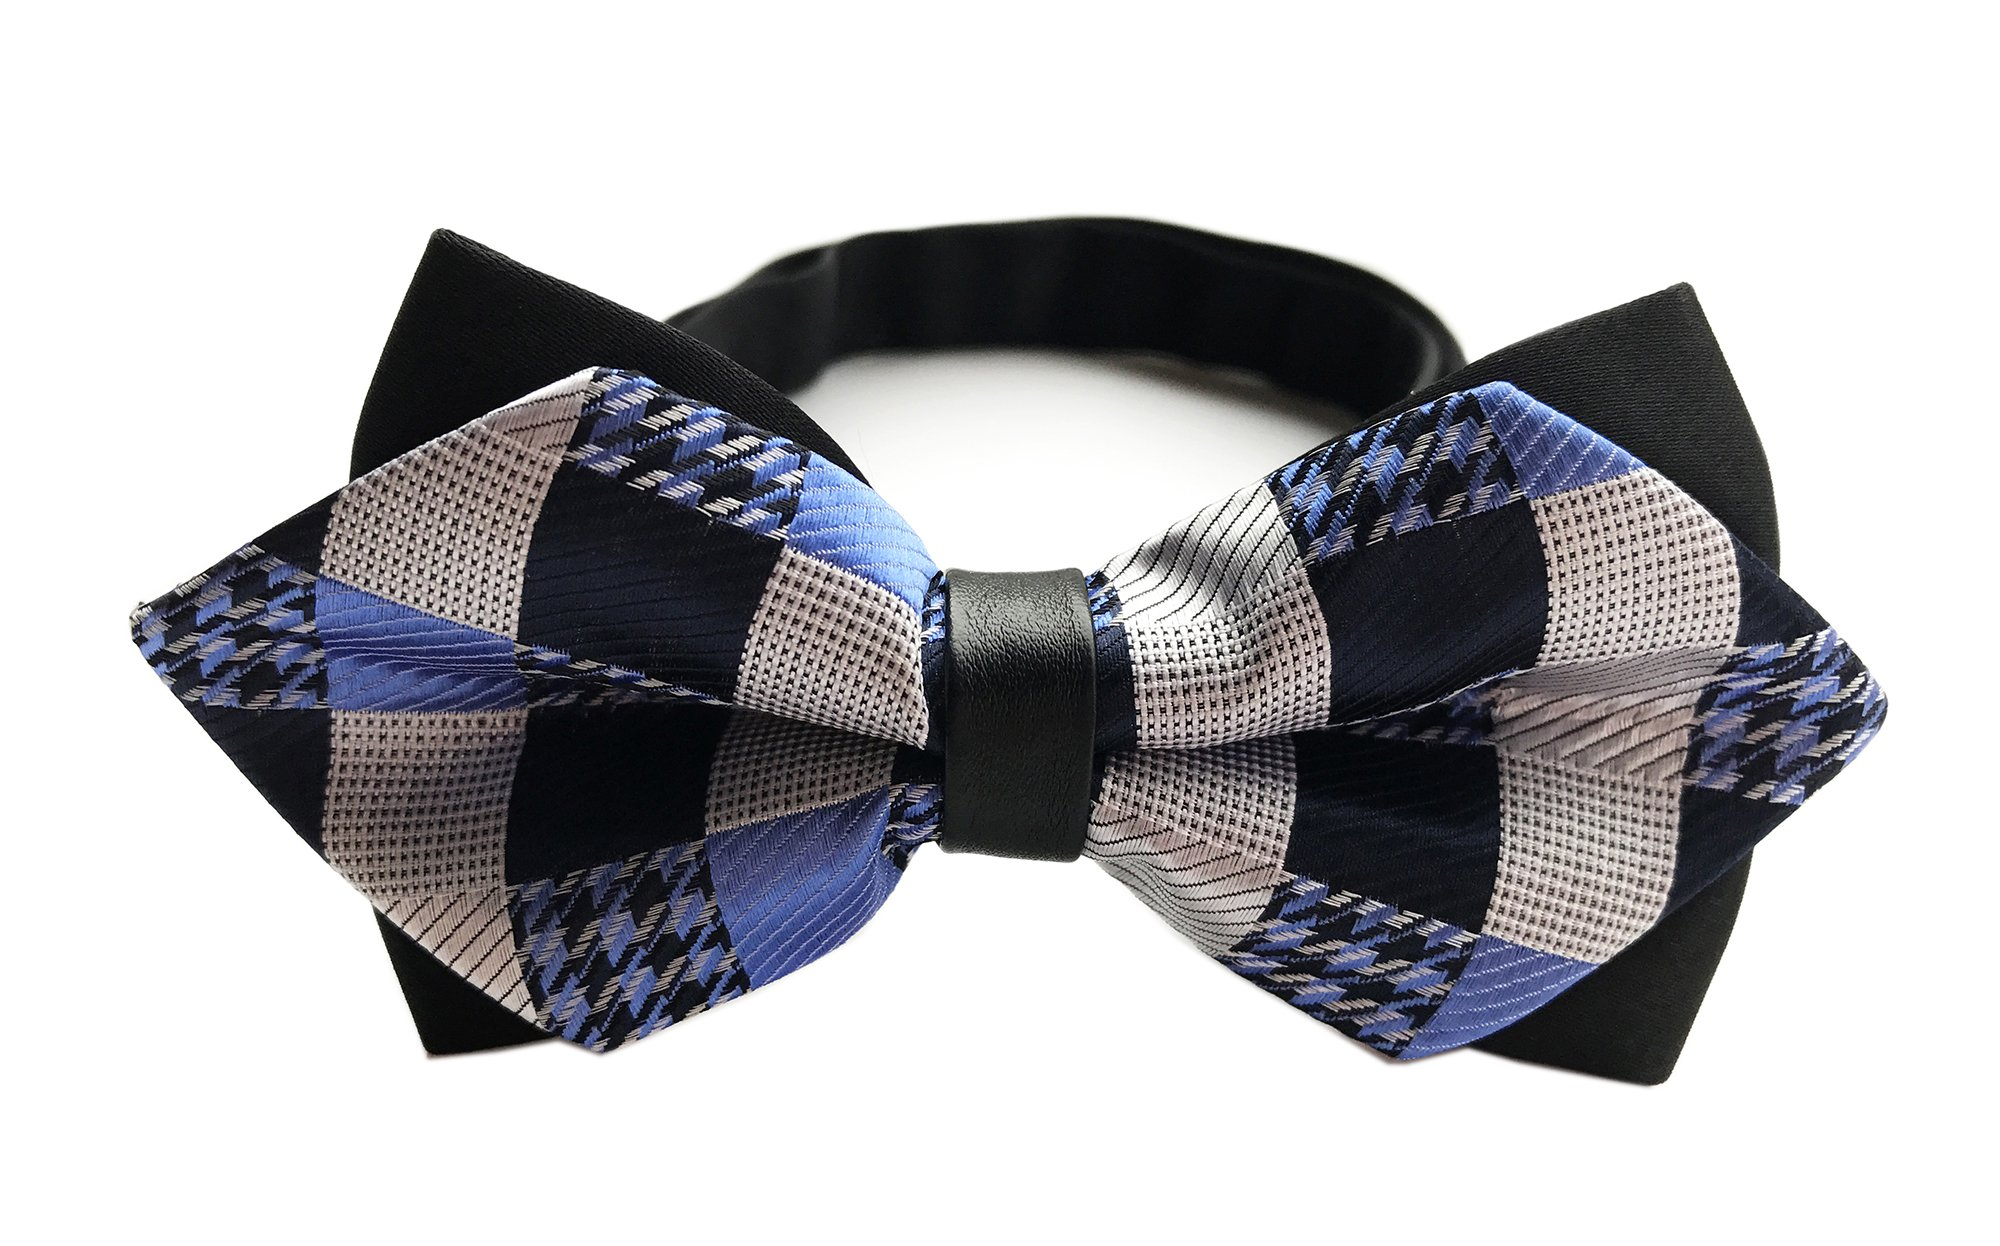 Men's Plaids Patterned Sky Blue Black Silver Bowties Clip On Bow Ties Neck Wear